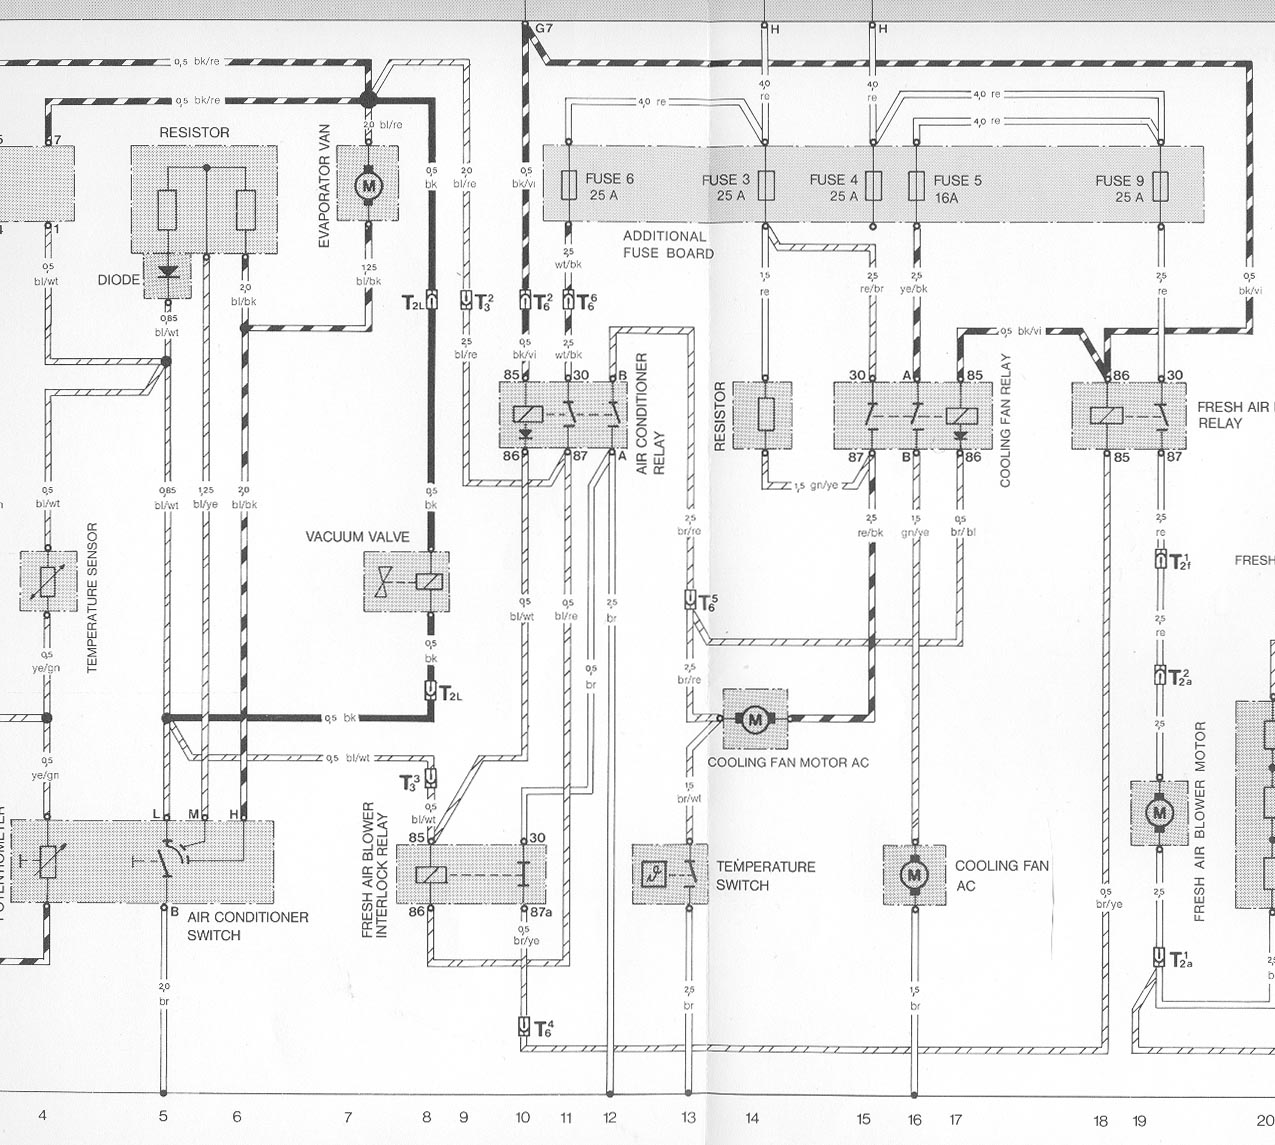 porsche 924 wiring diagram tipec • view topic help relay board image 1986 porsche 944 wiring diagram 1986